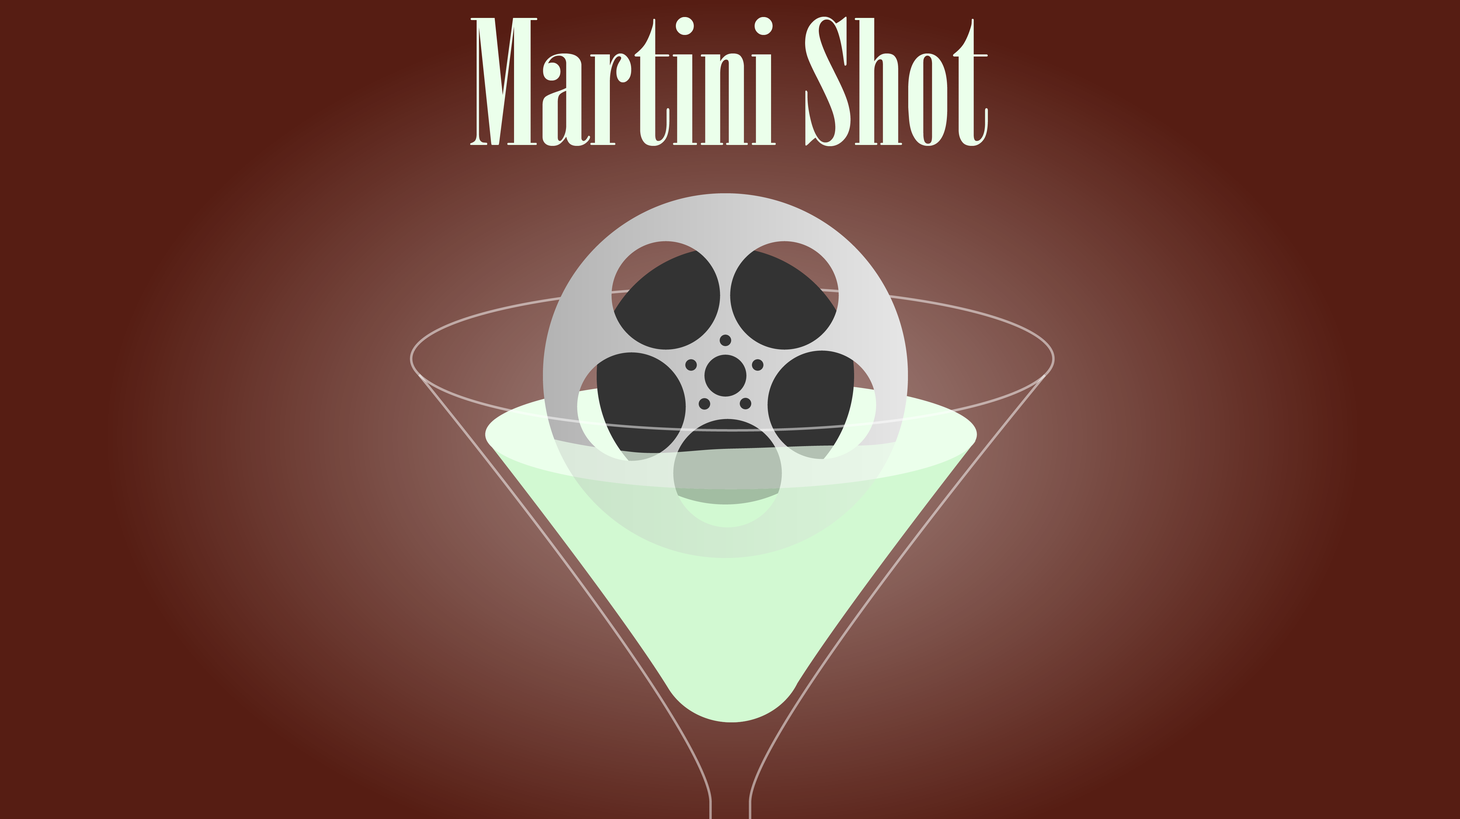 This is Rob Long, and on today's Martini Shot I take a long boat trip to interestingand exotic places, and end up heading back to the boat for pizza night, which is a metaphor Ihope everyone can relate to.